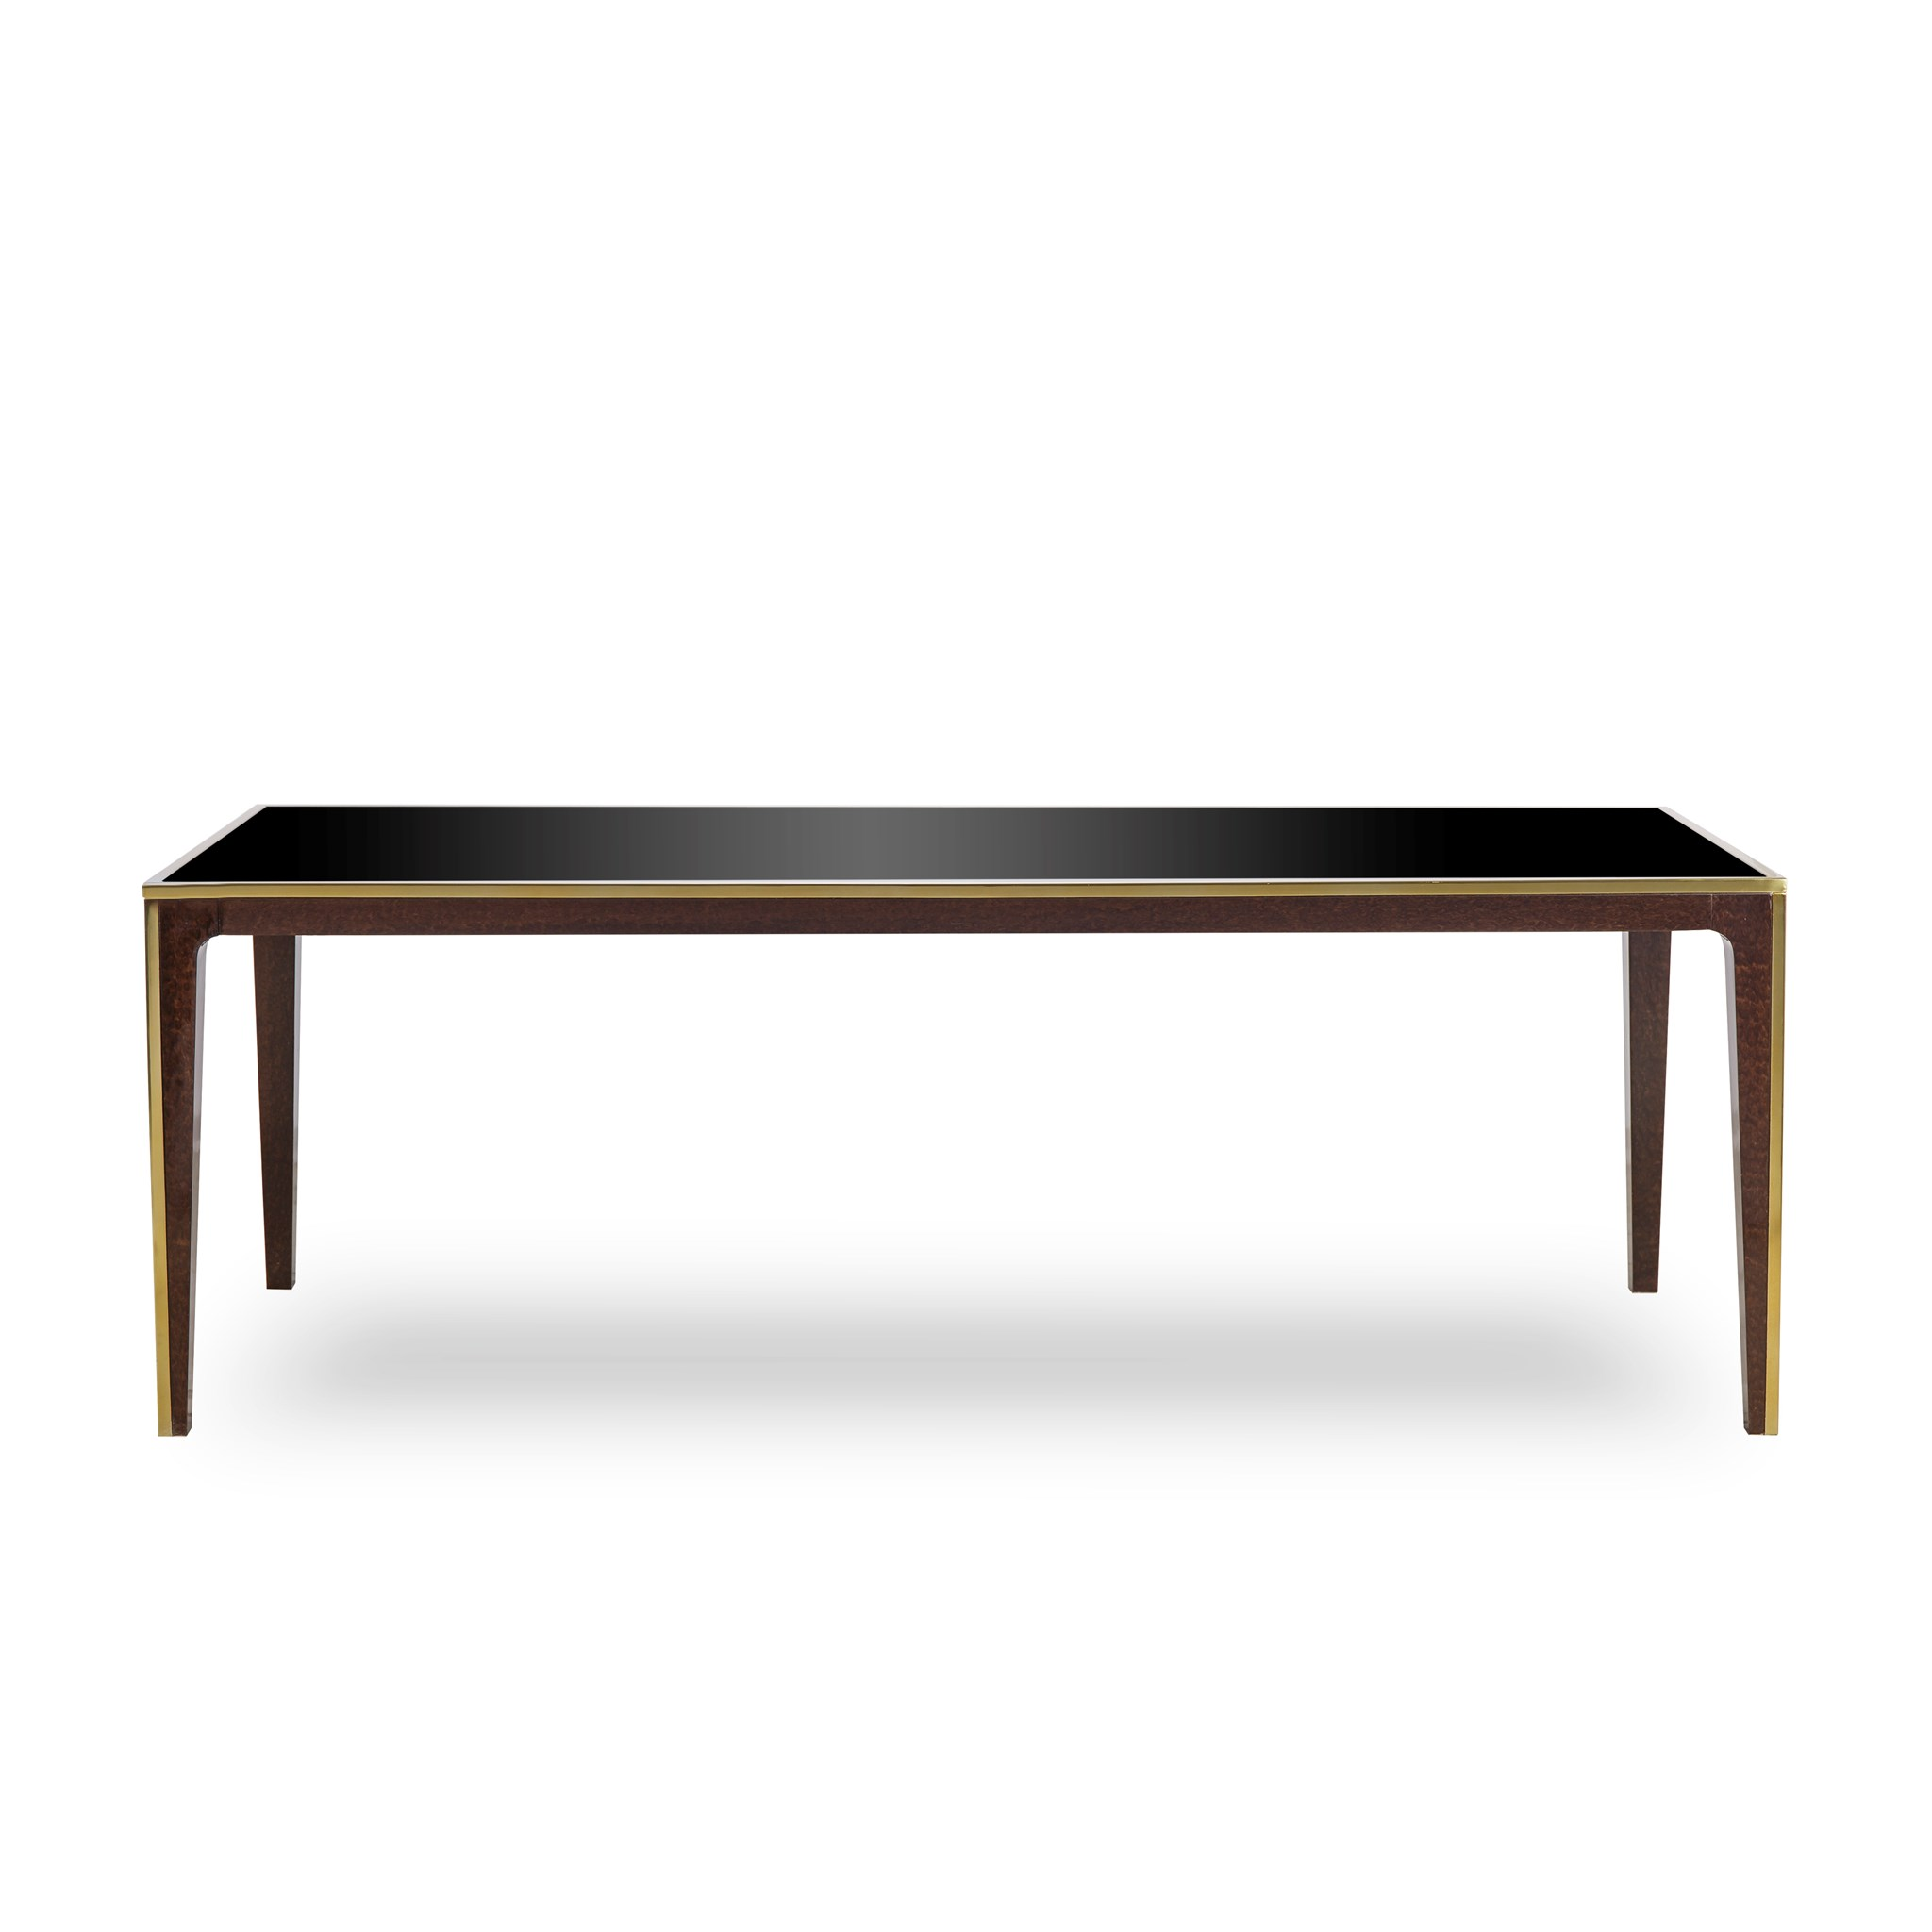 2048x2048 Silhouette Dining Table